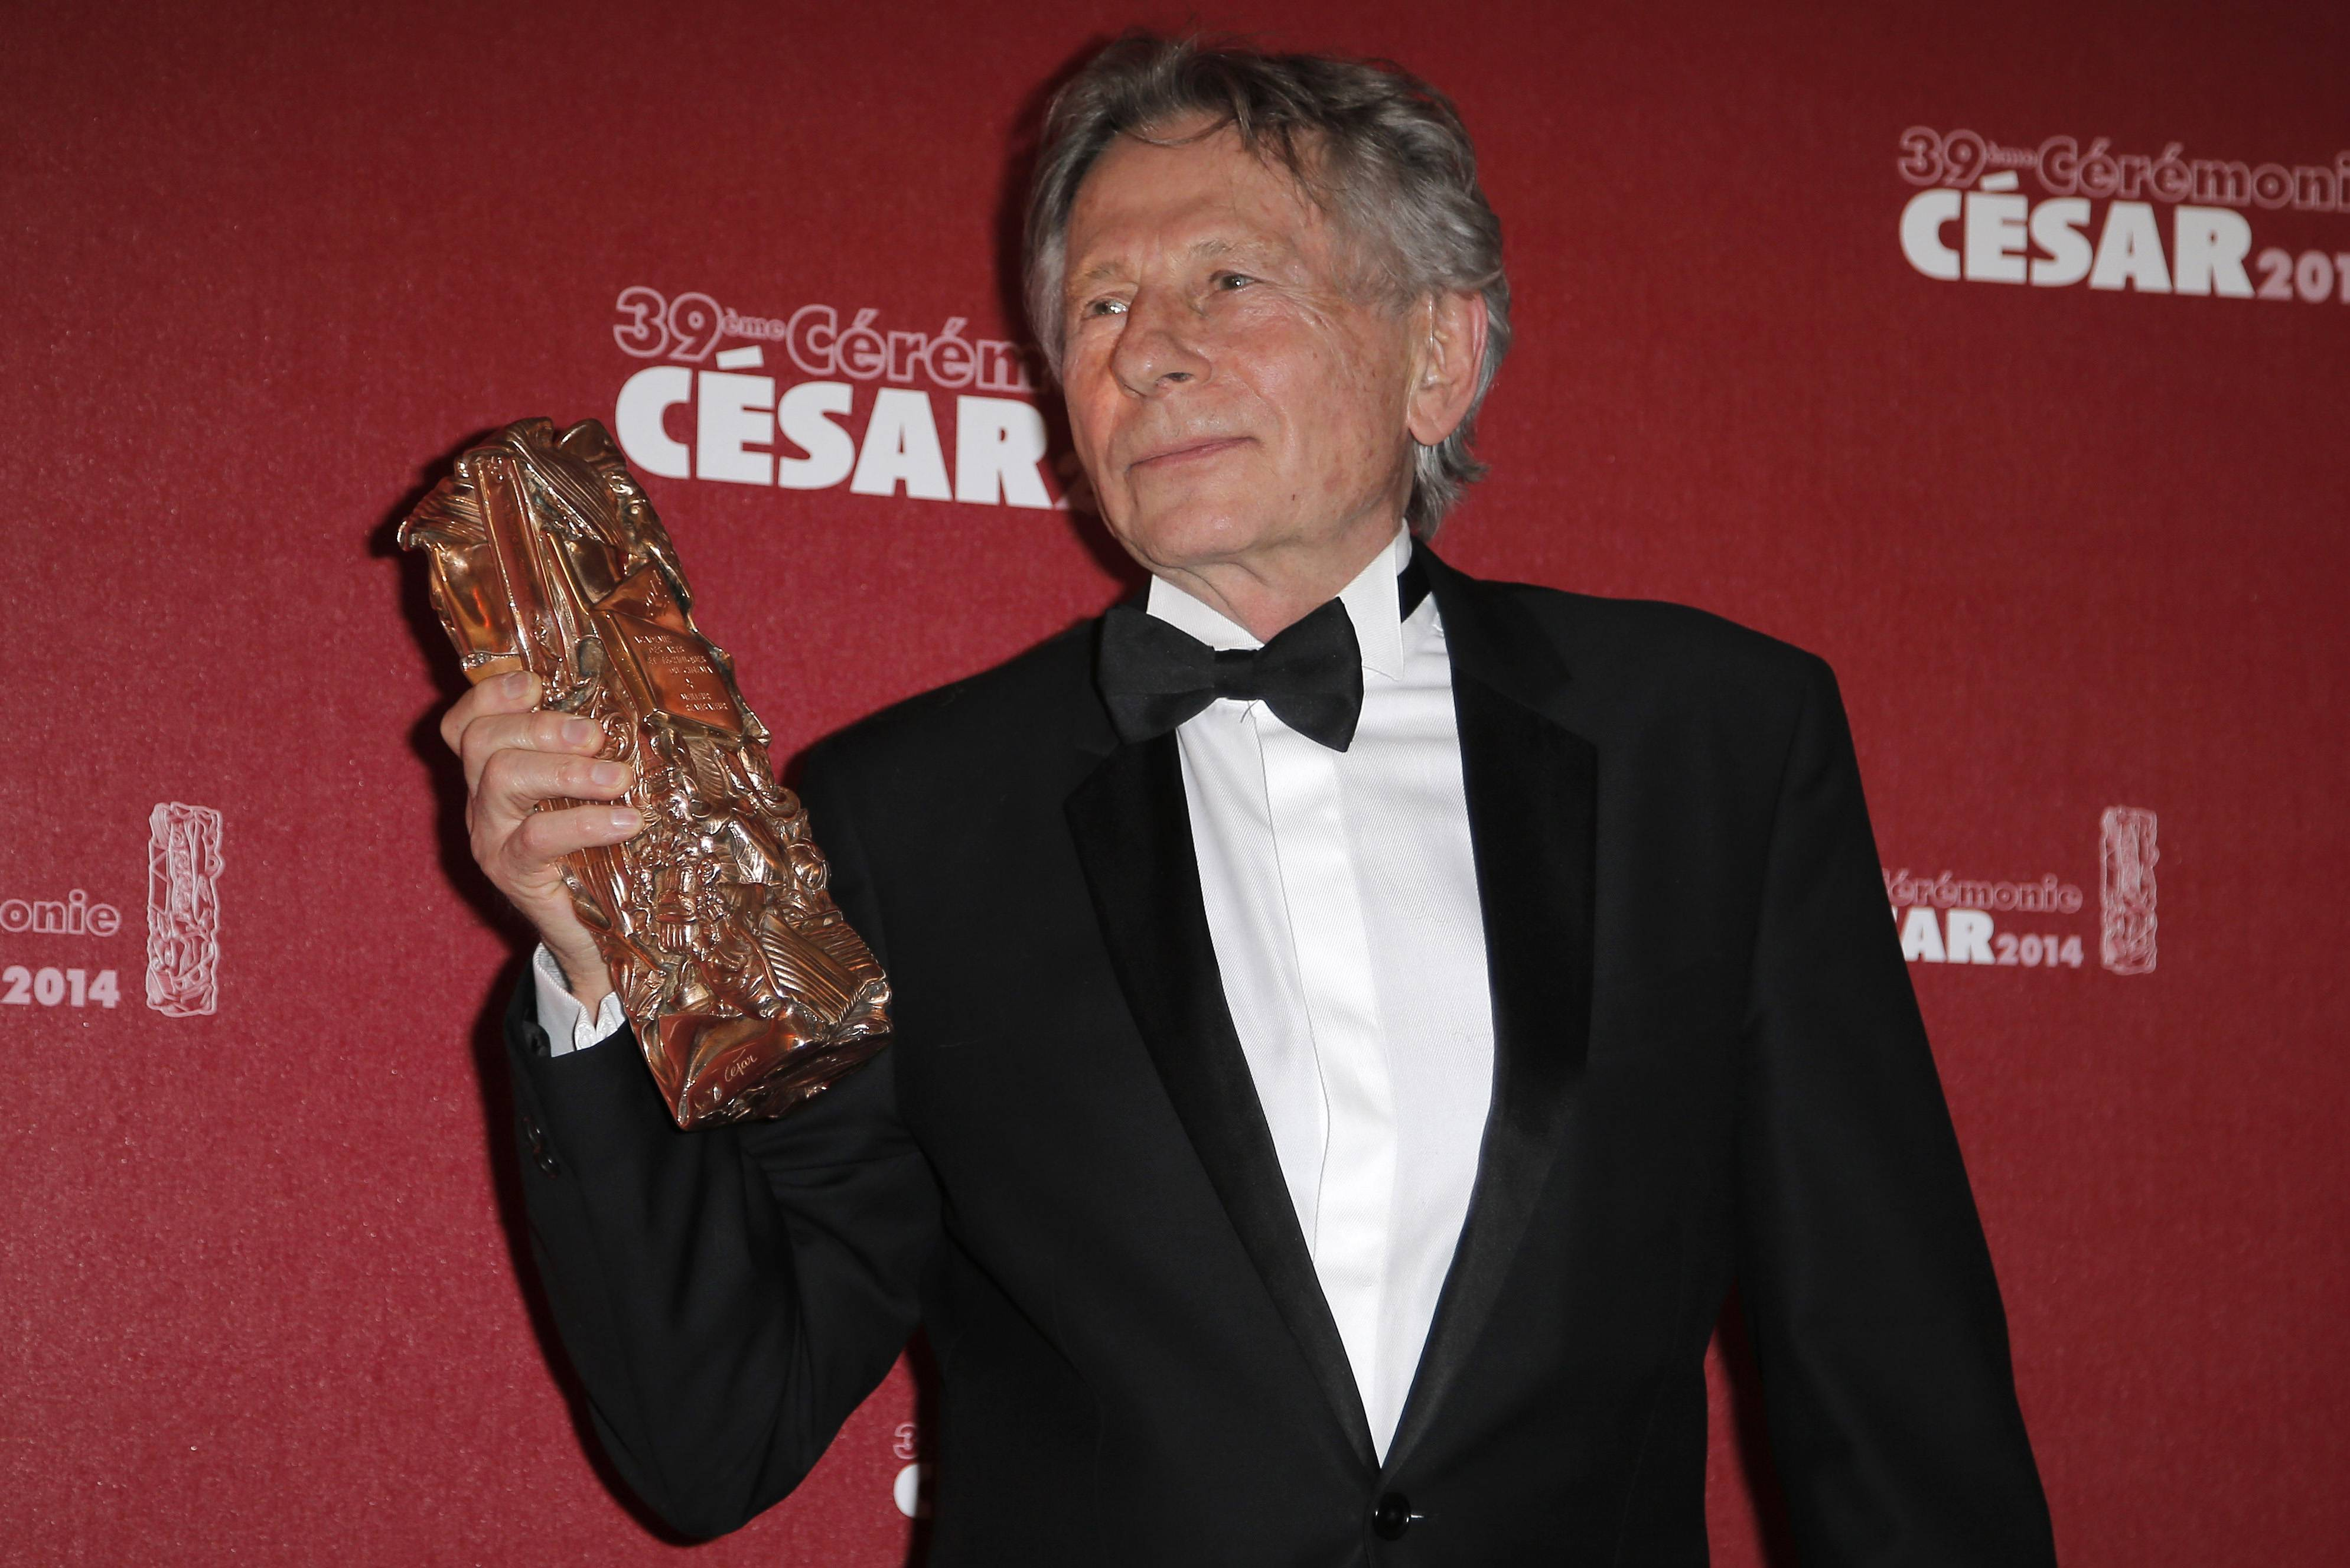 Prosecutors in Poland questioned filmmaker Roman Polanski on the request of U.S. prosecutors who are seeking his arrest on charges from 1977 of having sex with a minor, a spokeswoman said Thursday, Oct. 30, 2014.